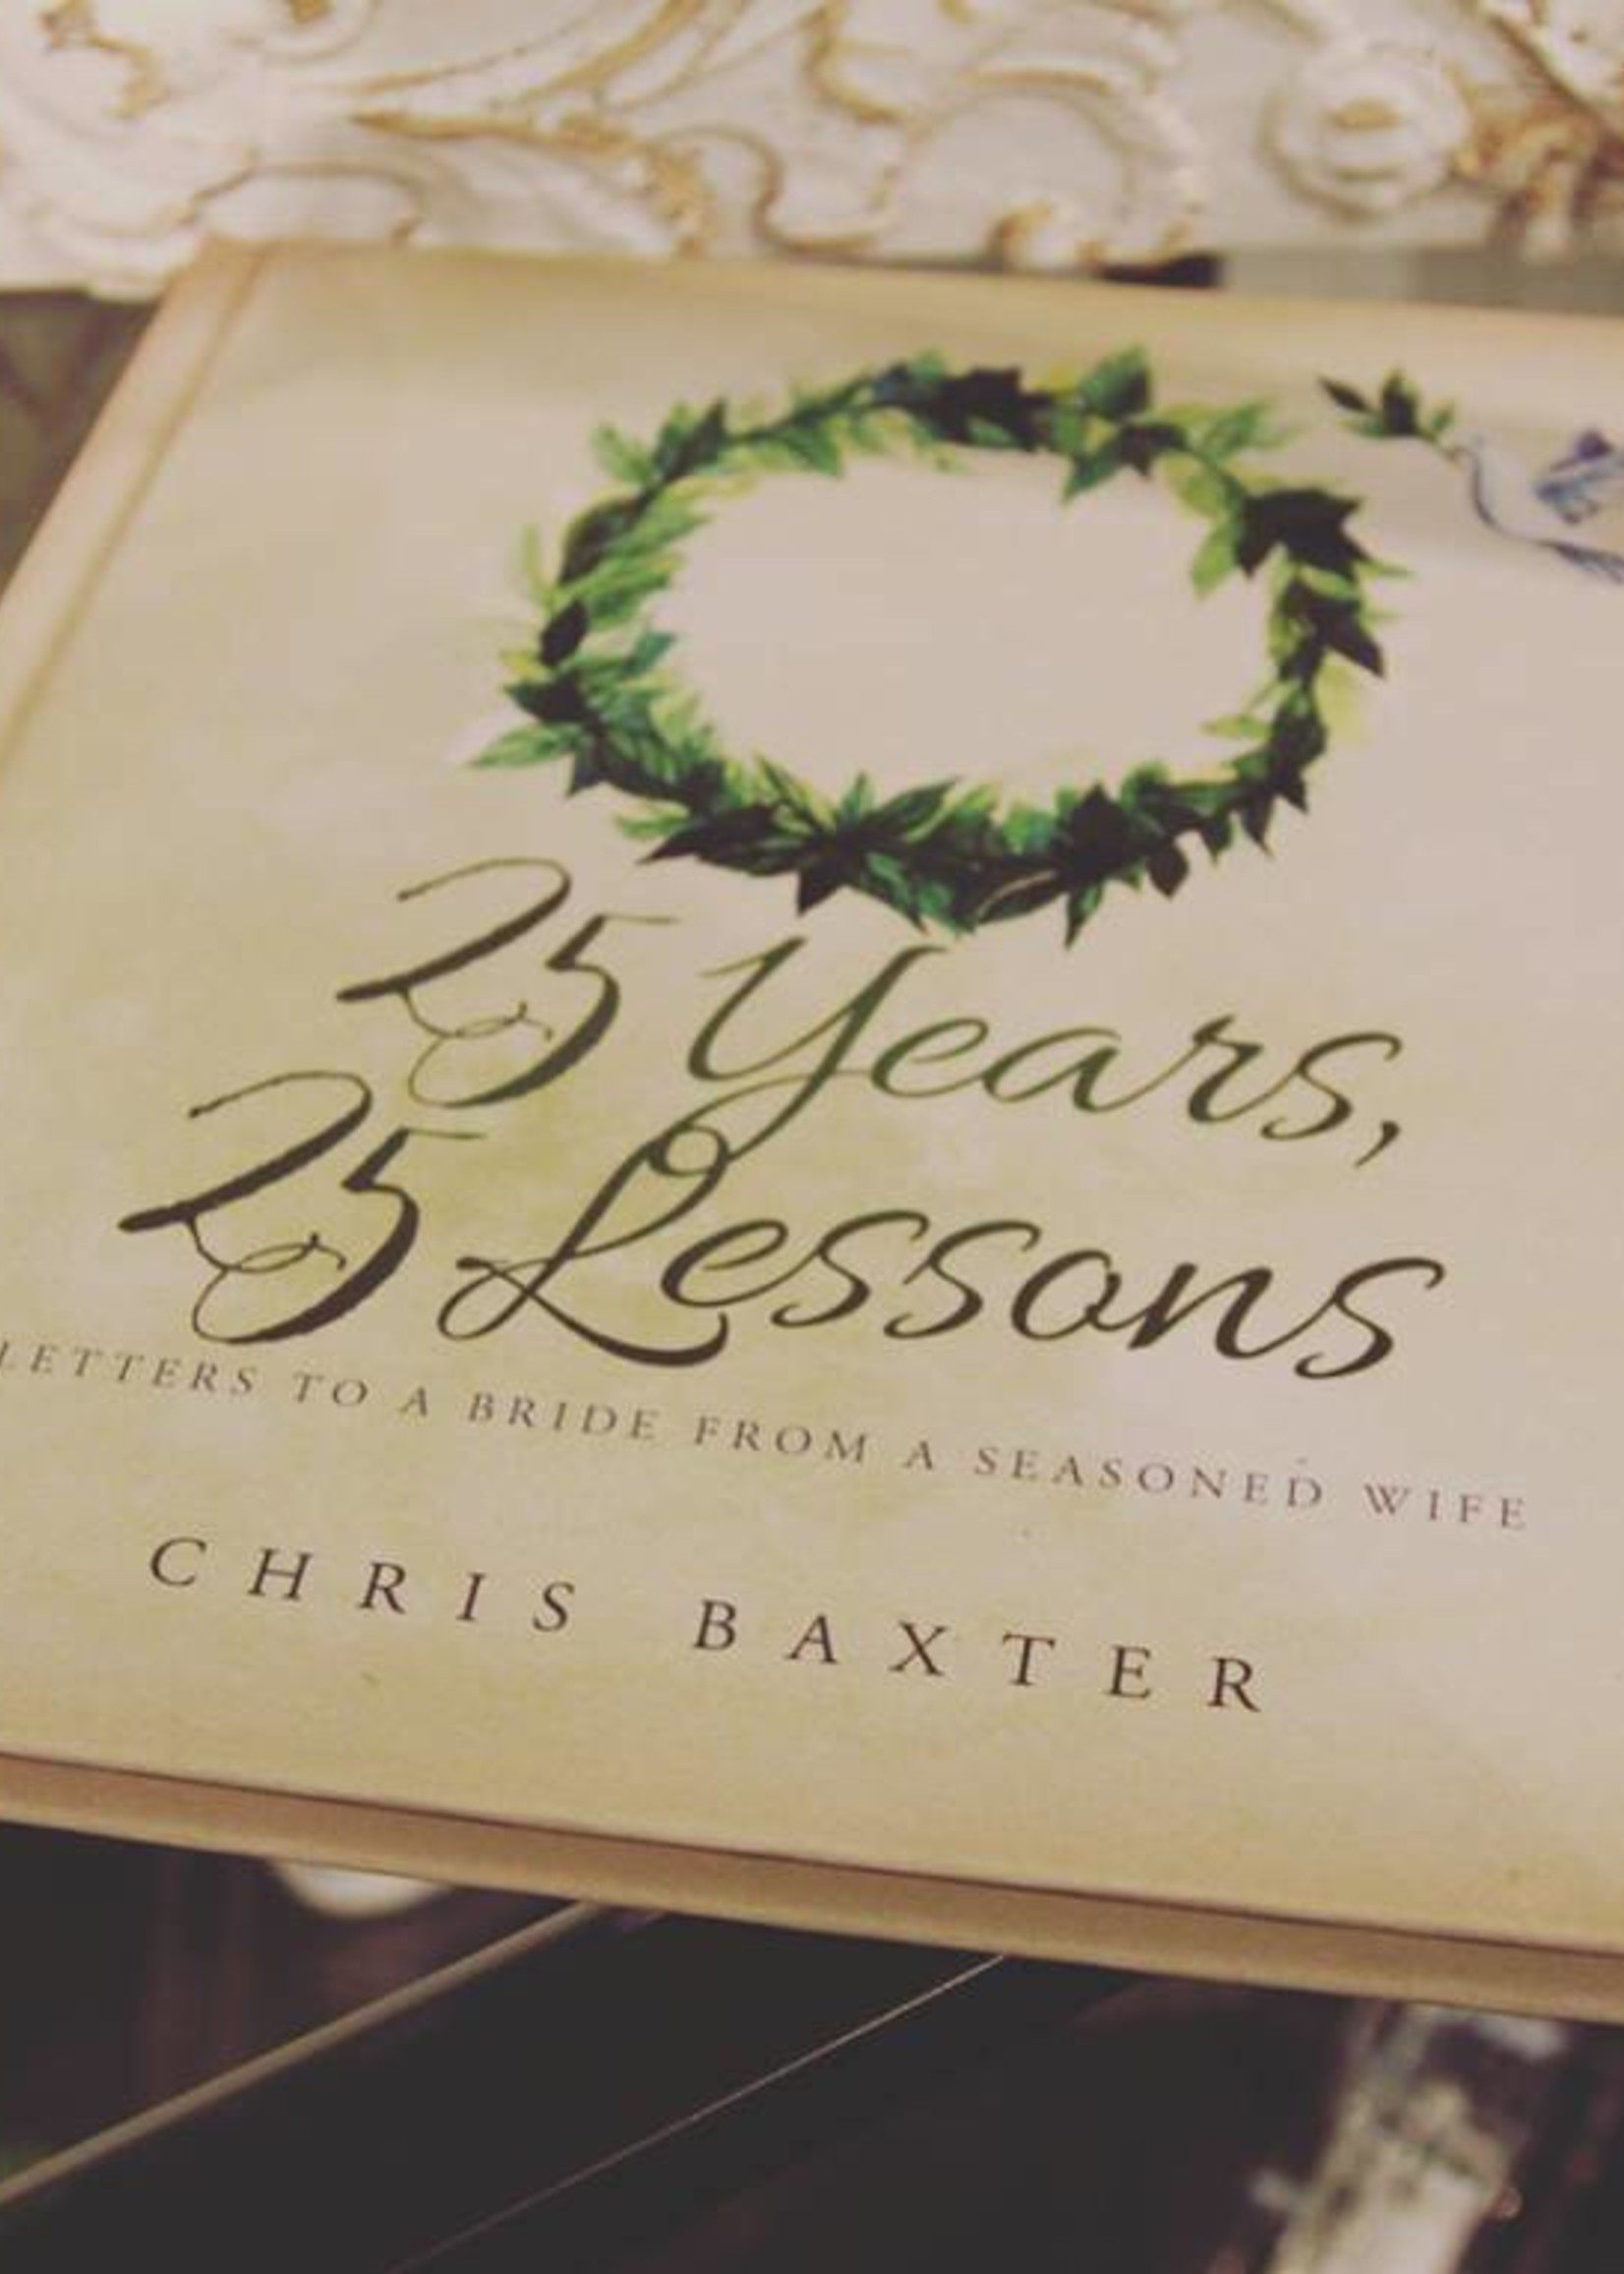 25 Years, 25 Lessons